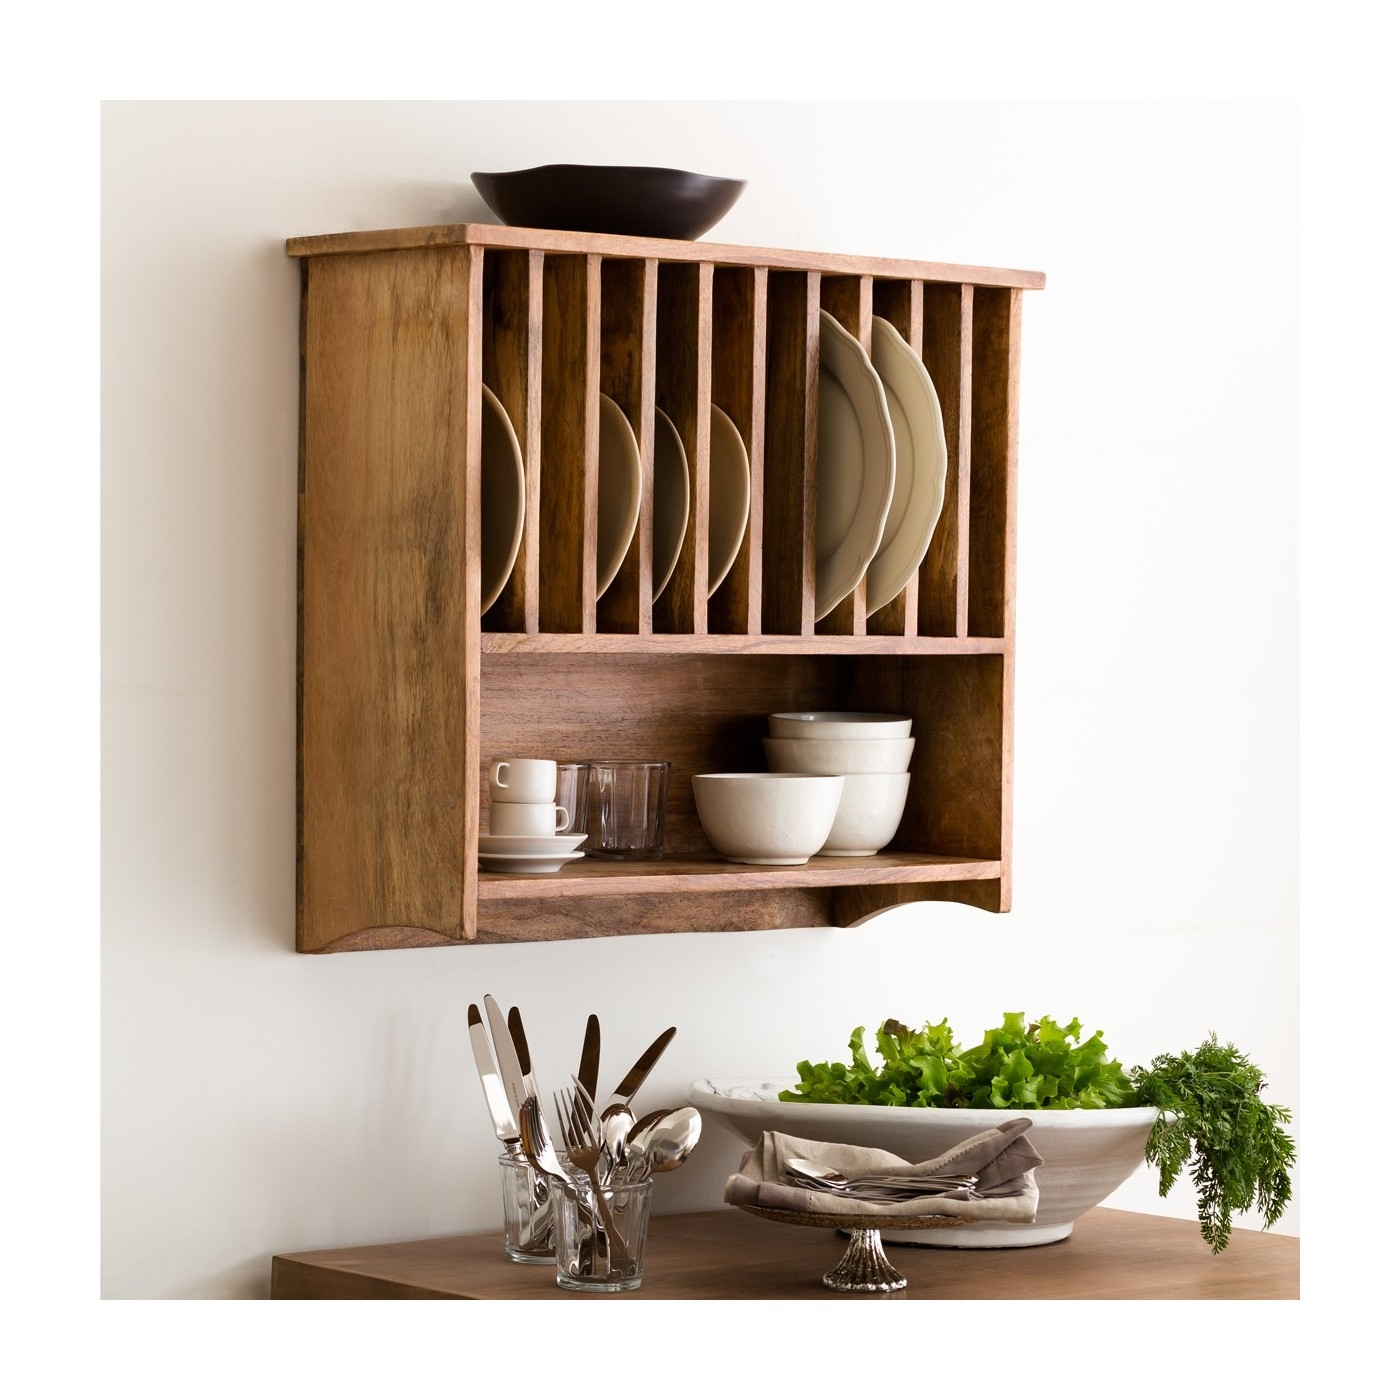 Wooden Plate Racks For Kitchen Cabinets